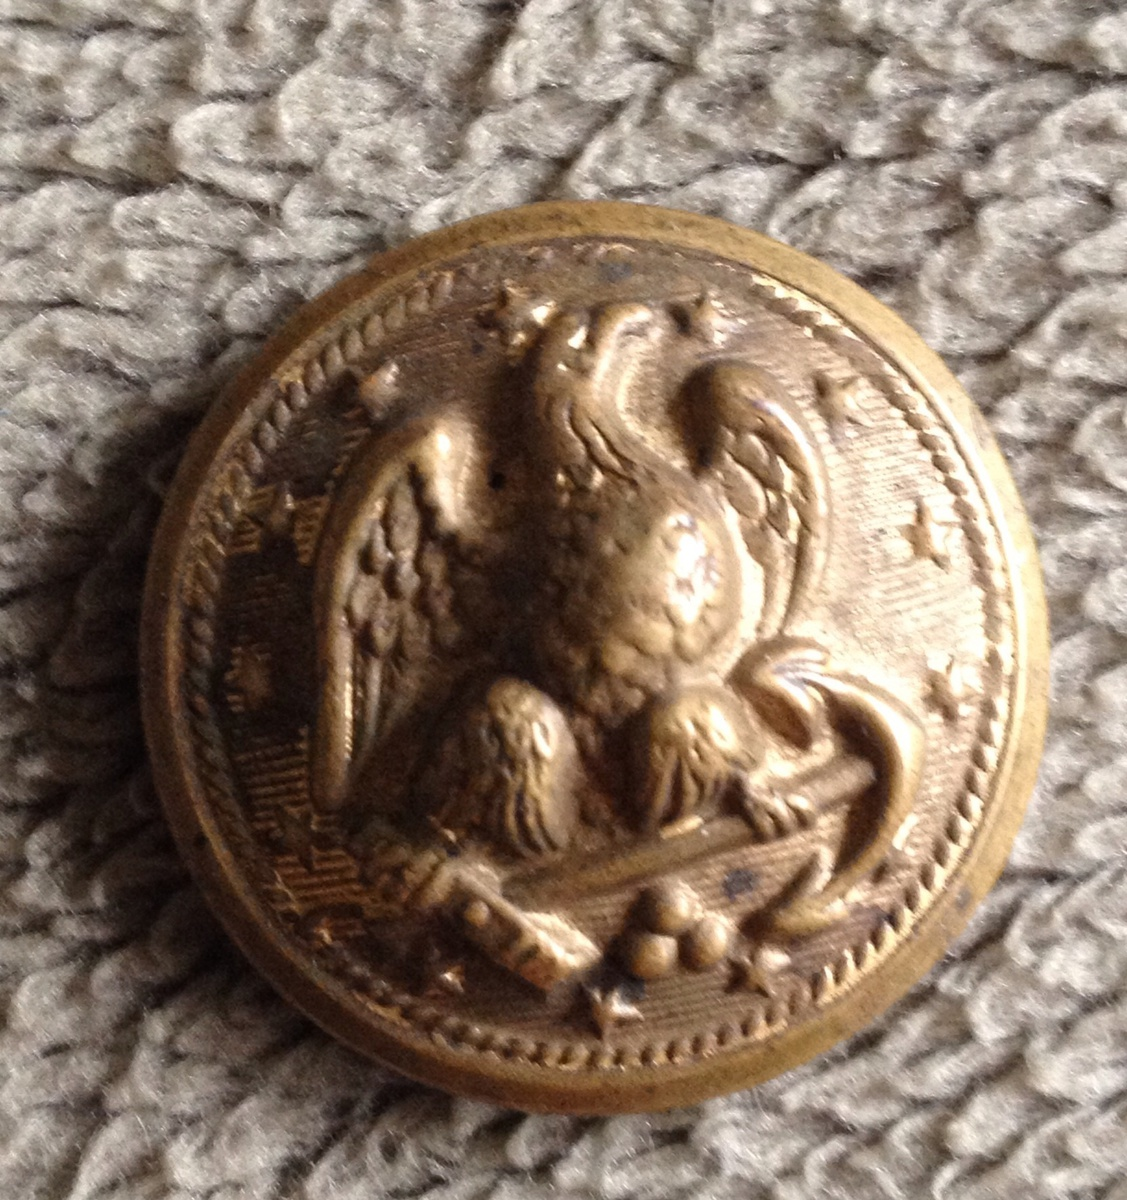 Antiques Us: Antique Military Button Please Help ID WW1??